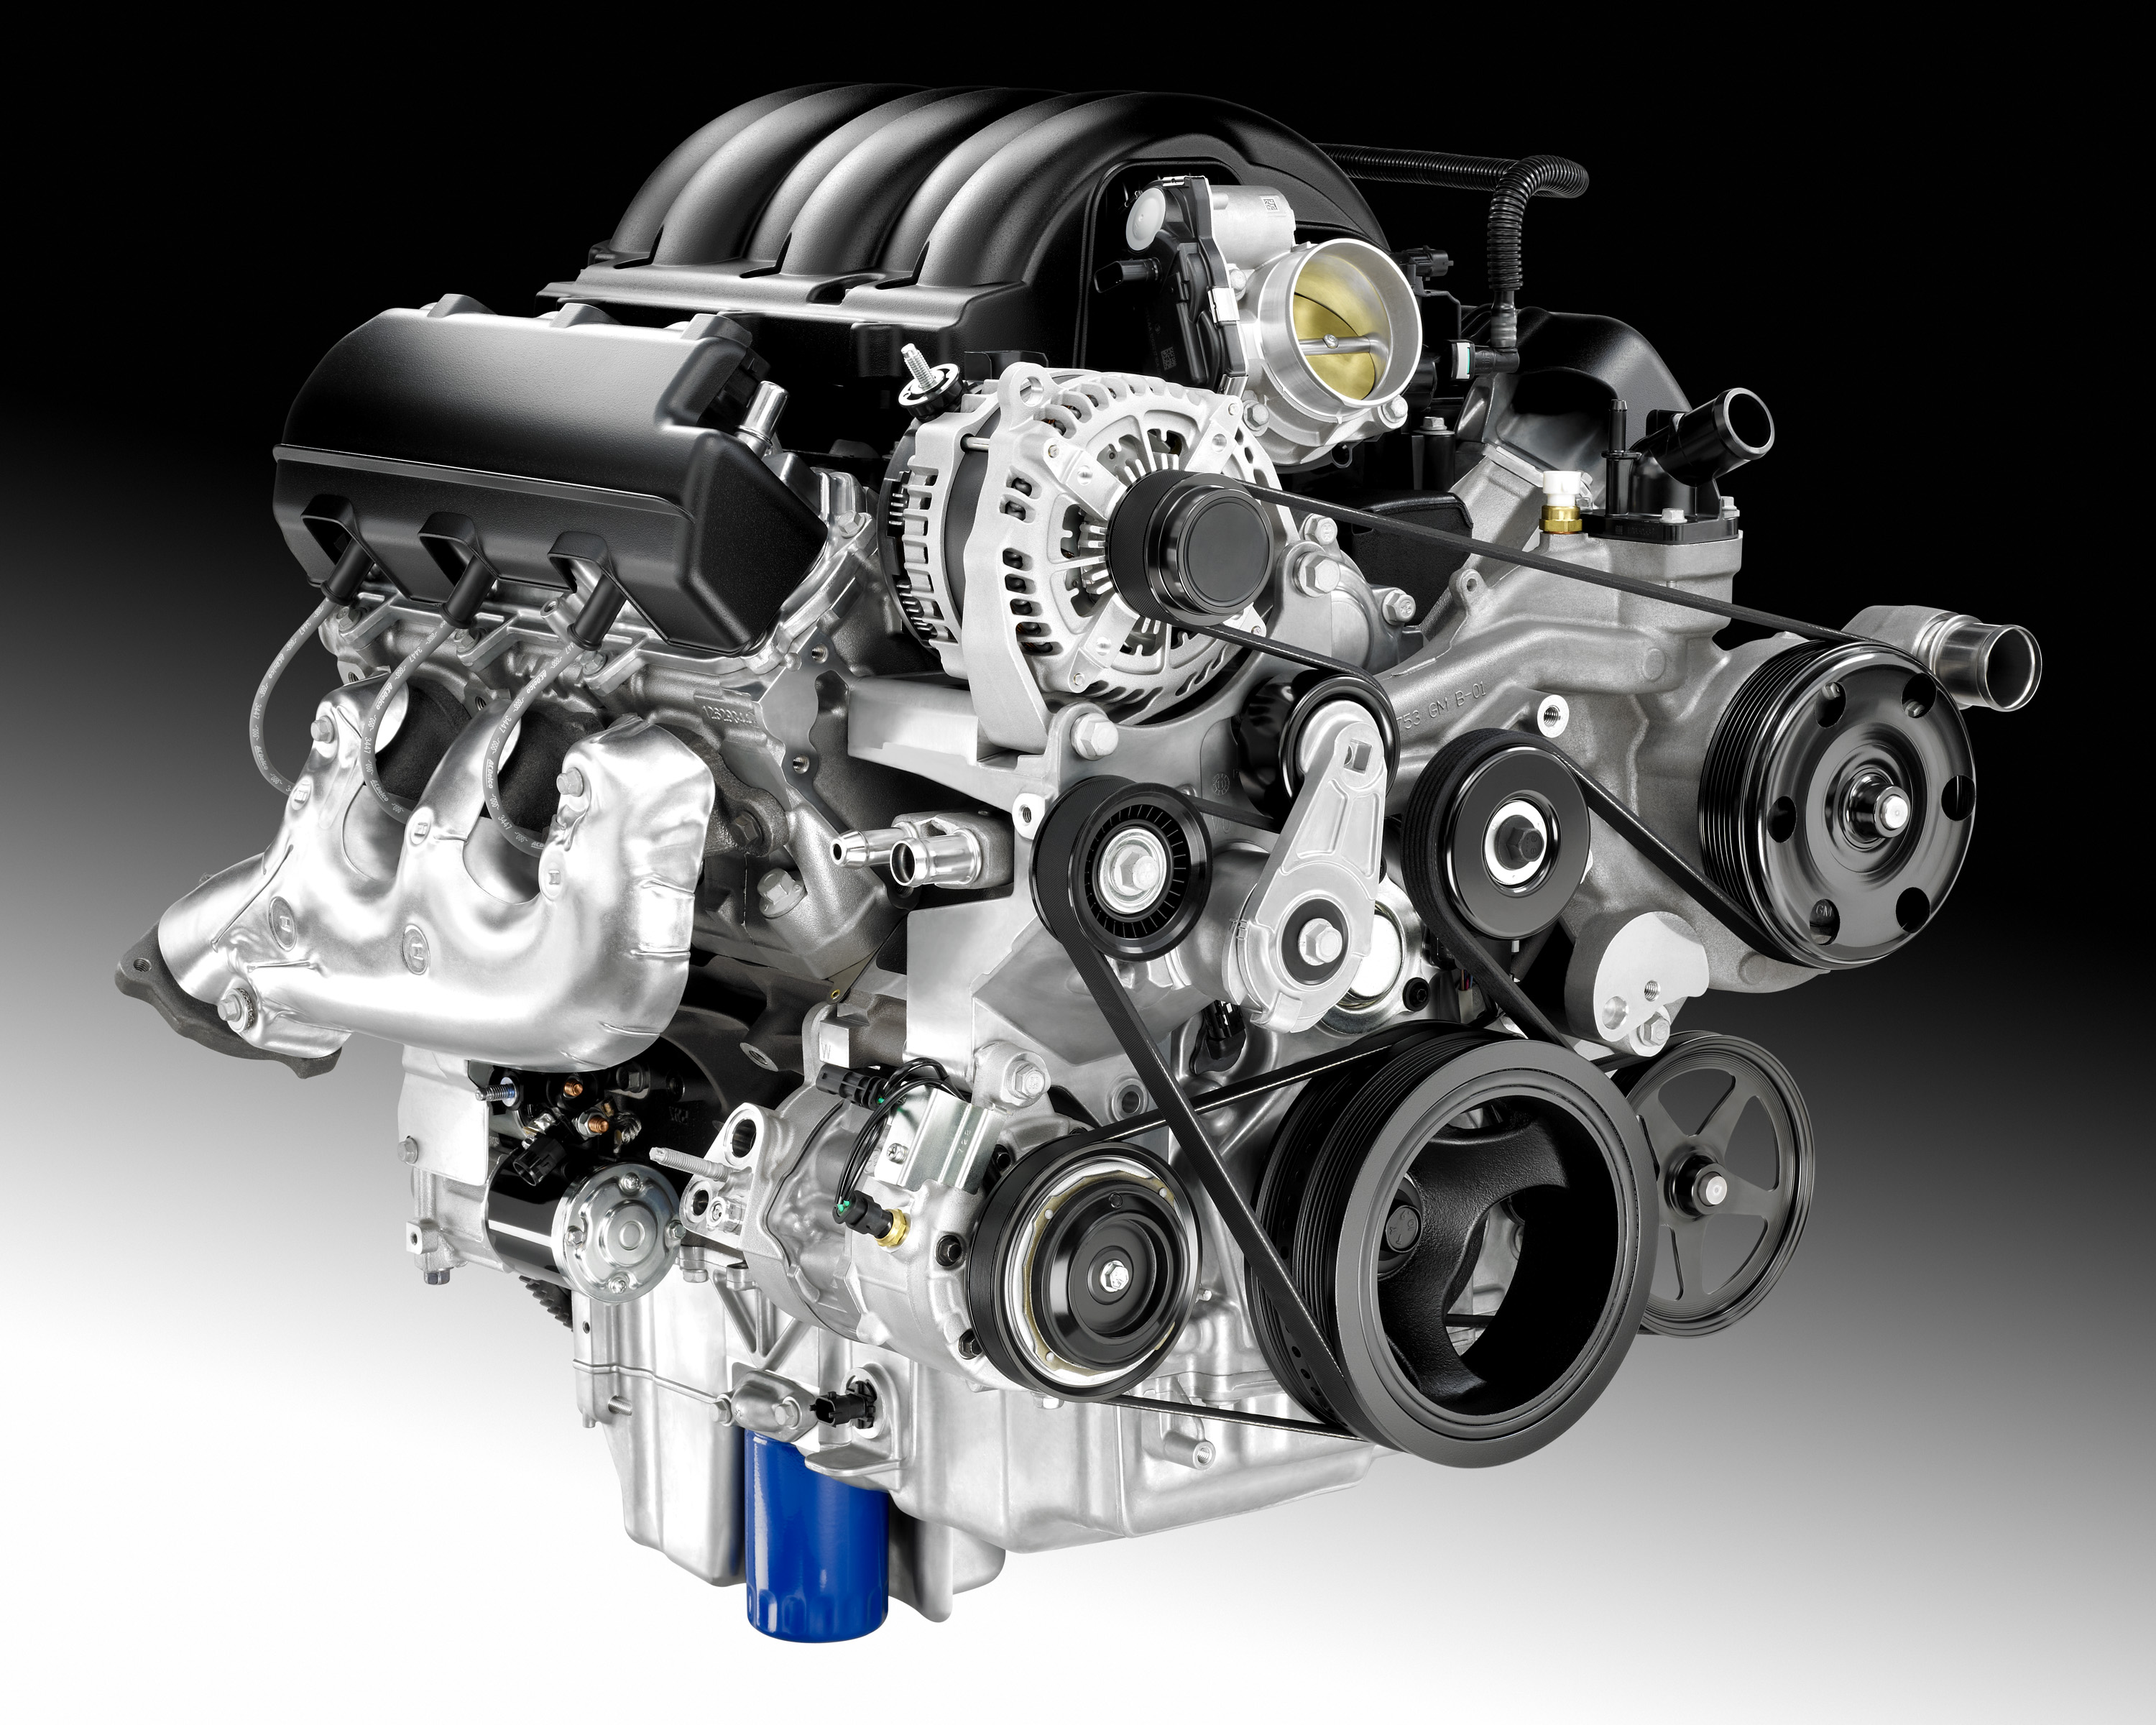 Gm 5 3 Engine Diagram Reveolution Of Wiring 2007 Volkswagen Rabbit Trio New Ecotec3 Engines Powers Silverado And Sierra Rh Media Com Liter Vortec Sensors Chevy 53